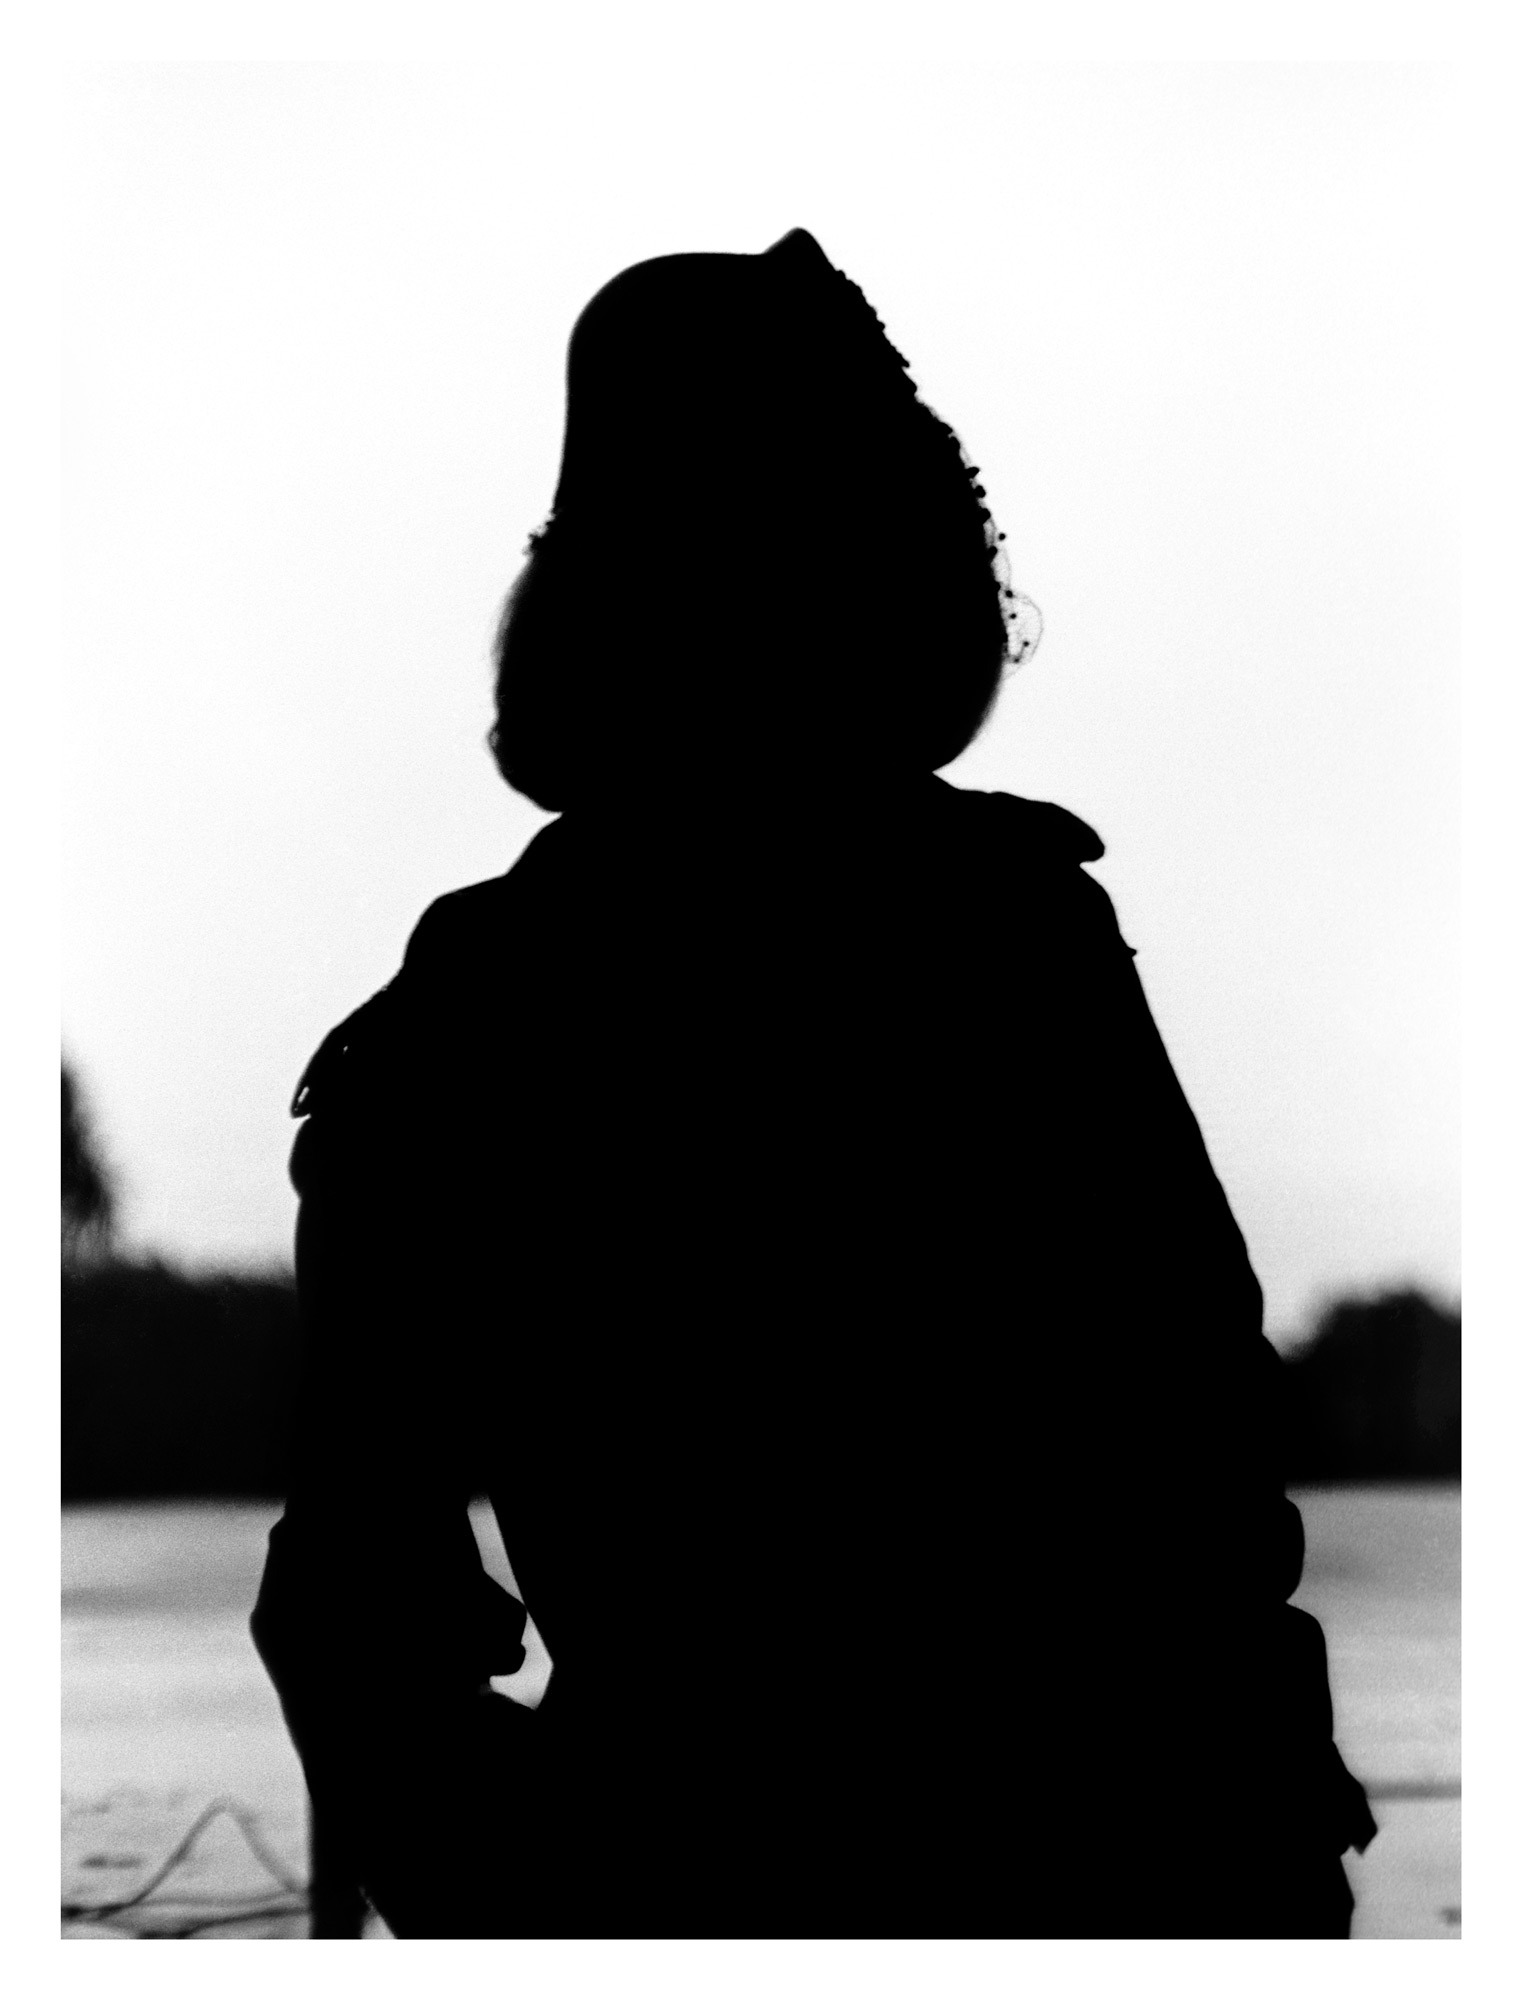 Silhouetted no.1 (2010)